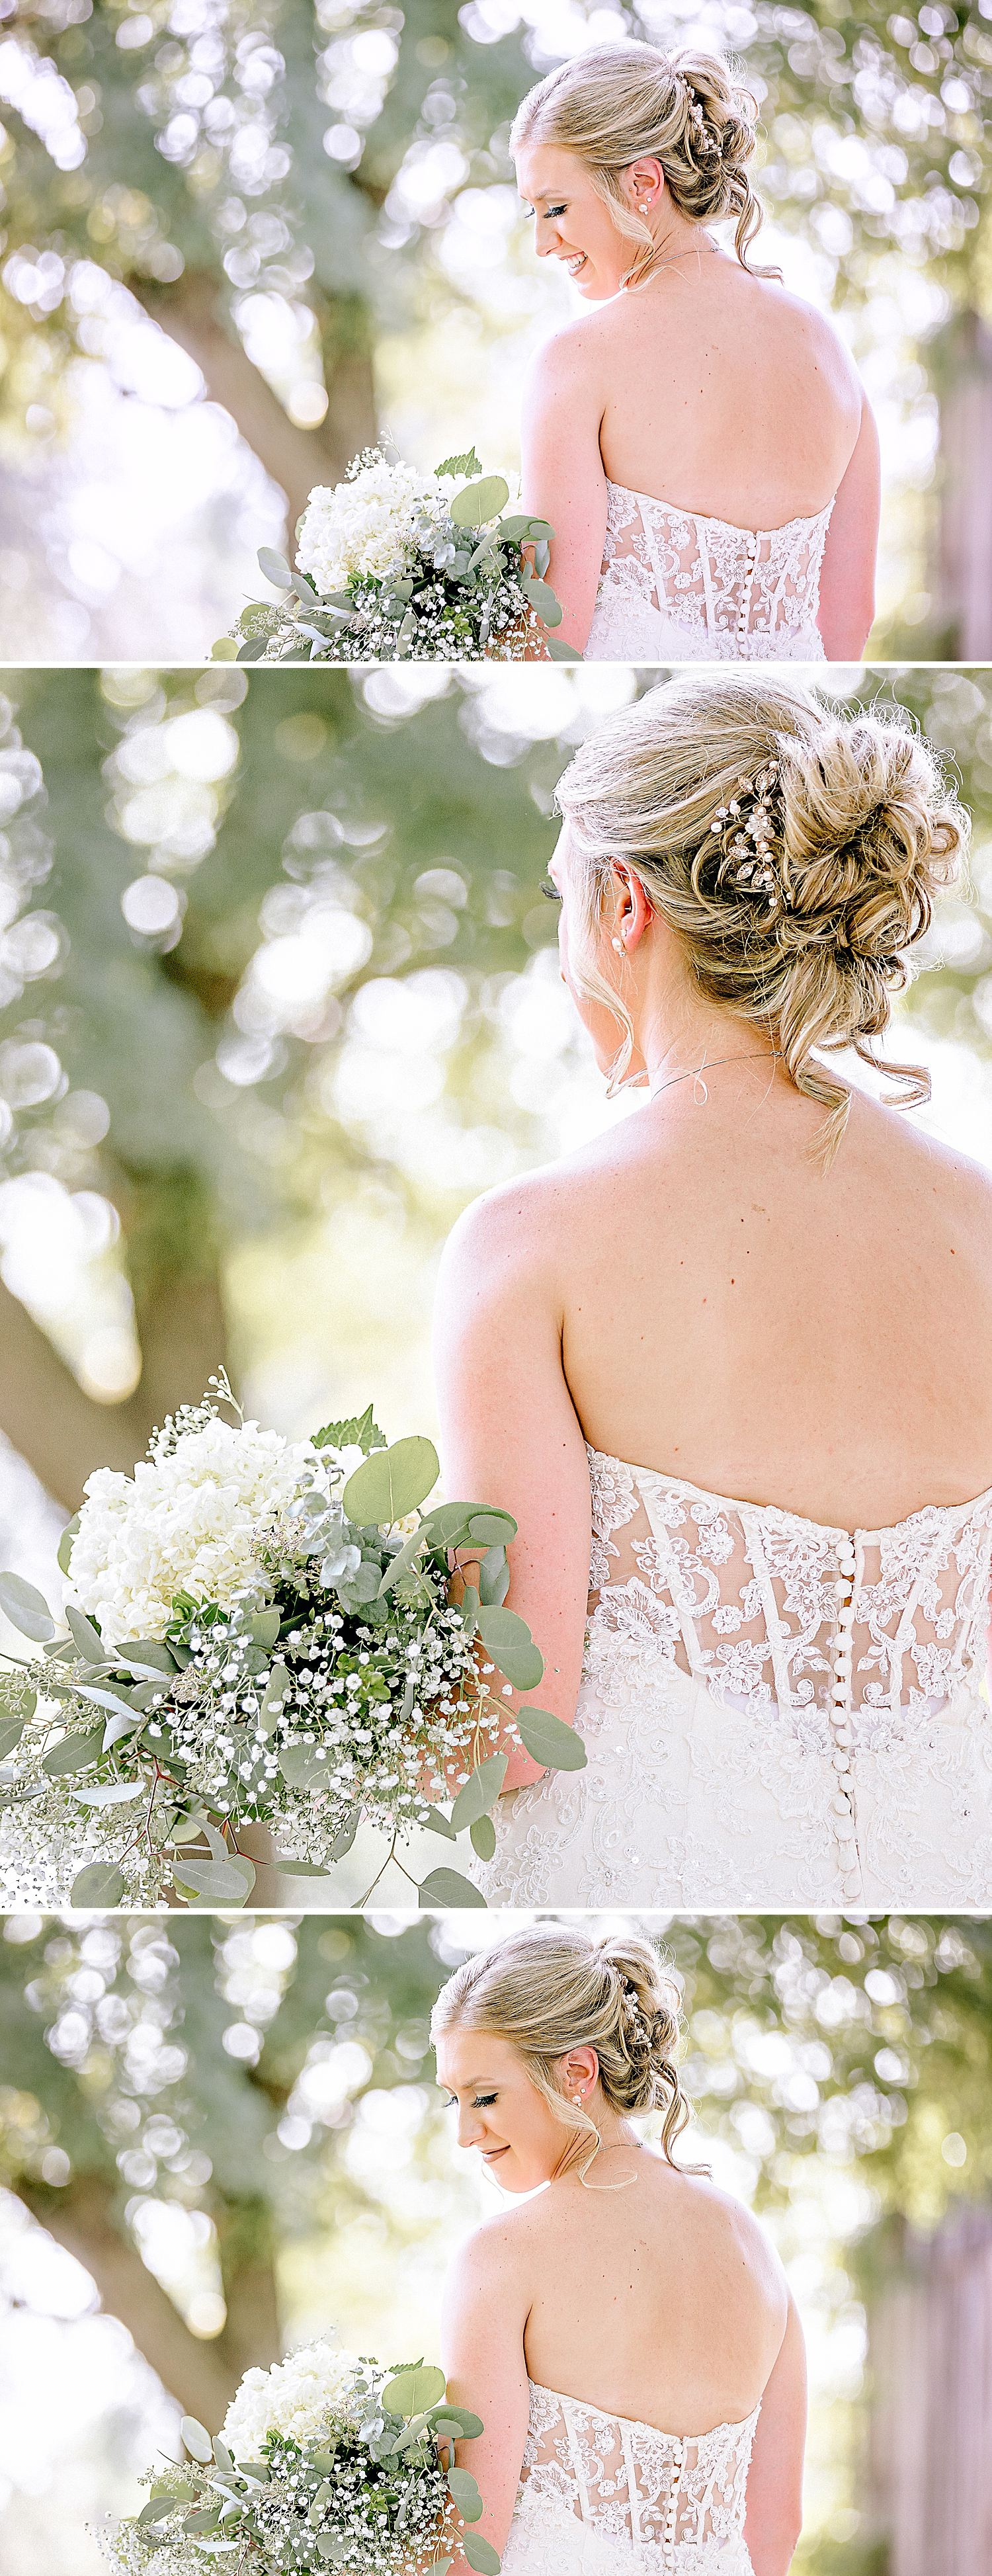 Carly-Barton-Photography-Bridal-Photos-Gruene-Rustic-New-Braunfels-Wedding-Photographer_0014.jpg